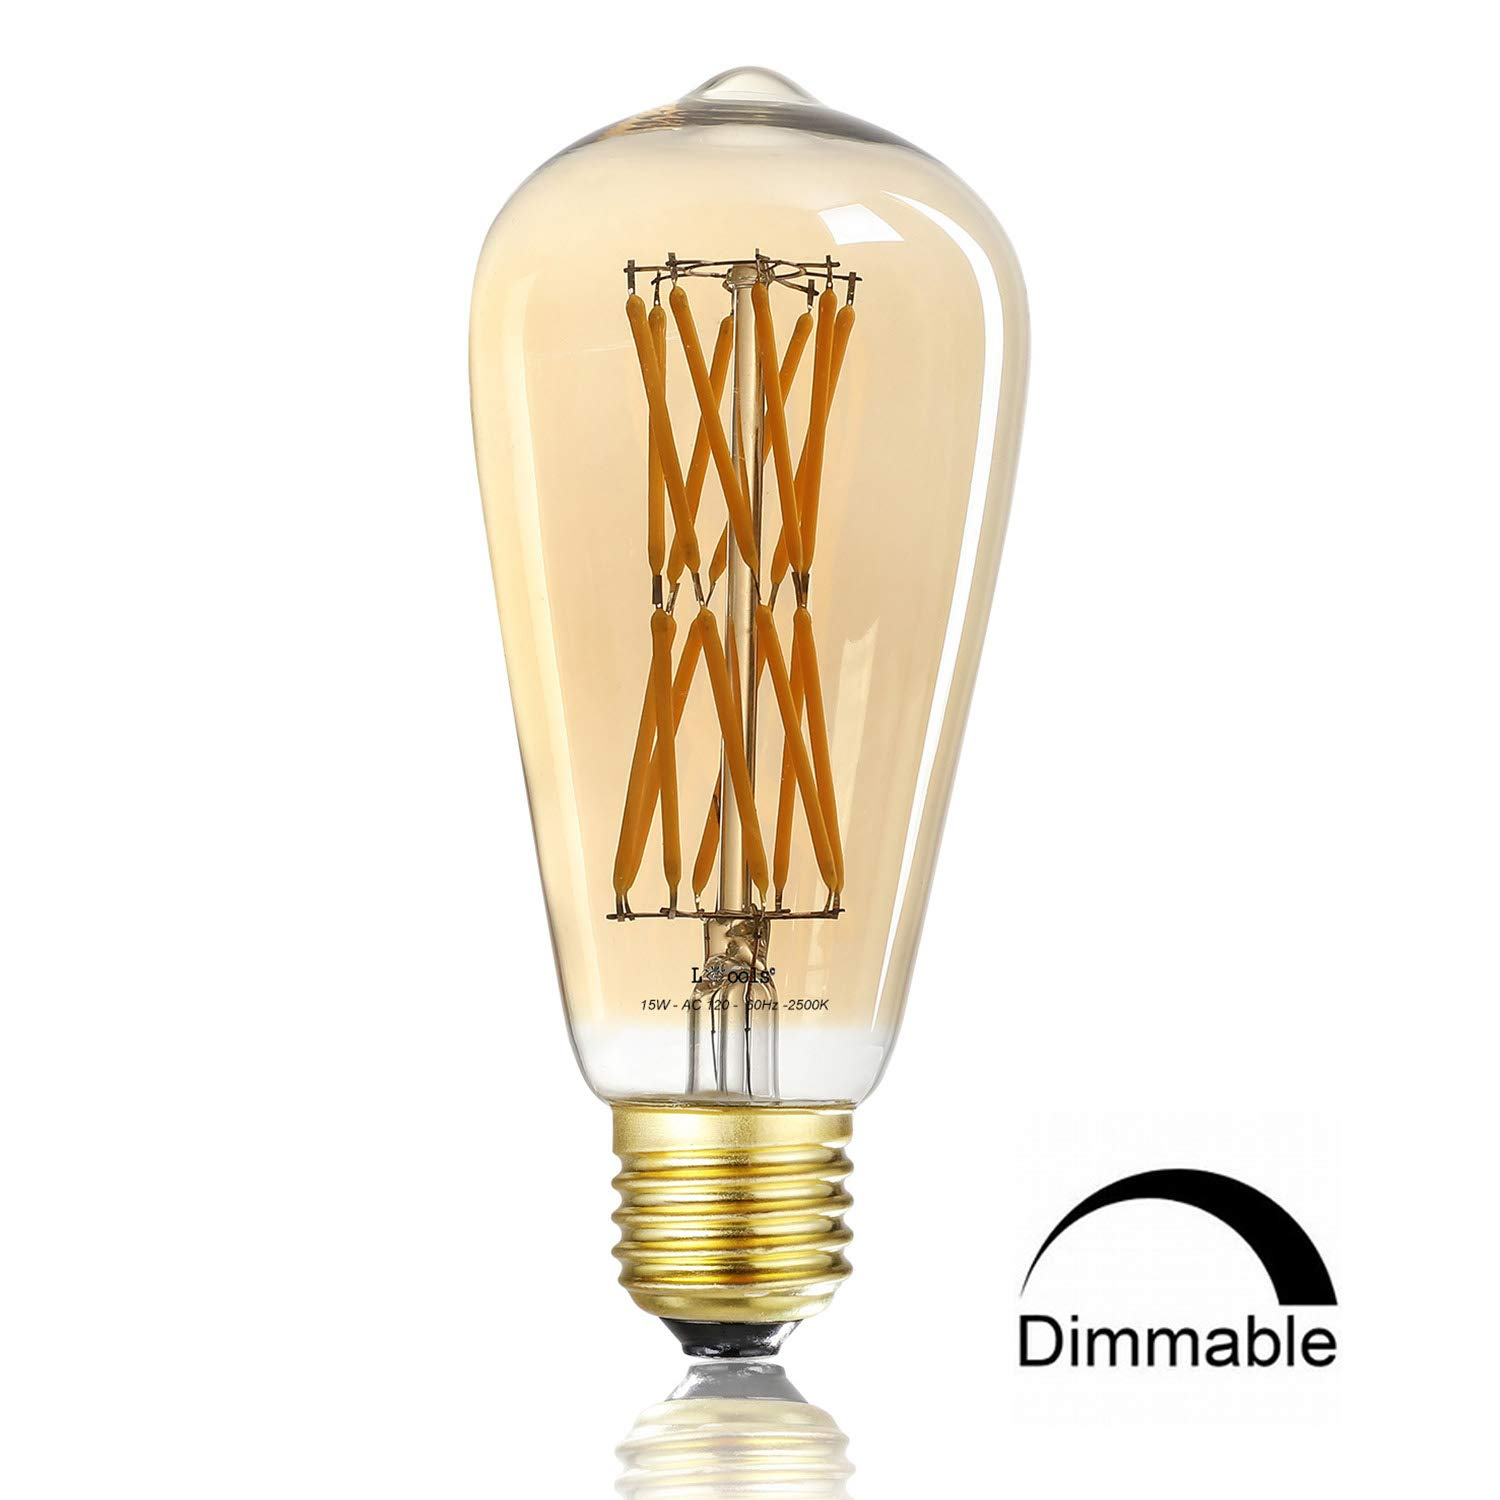 Leools 15W Edison Style Vintage LED Filament Light Bulb,ST64(ST21) Led Retro Bulb,100 Watt Equivalent Light Bulbs,Amber Warm 2500K, (Amber Gold Glass), Squarrel Cage Filament Vintage Light Bulb,ST64,